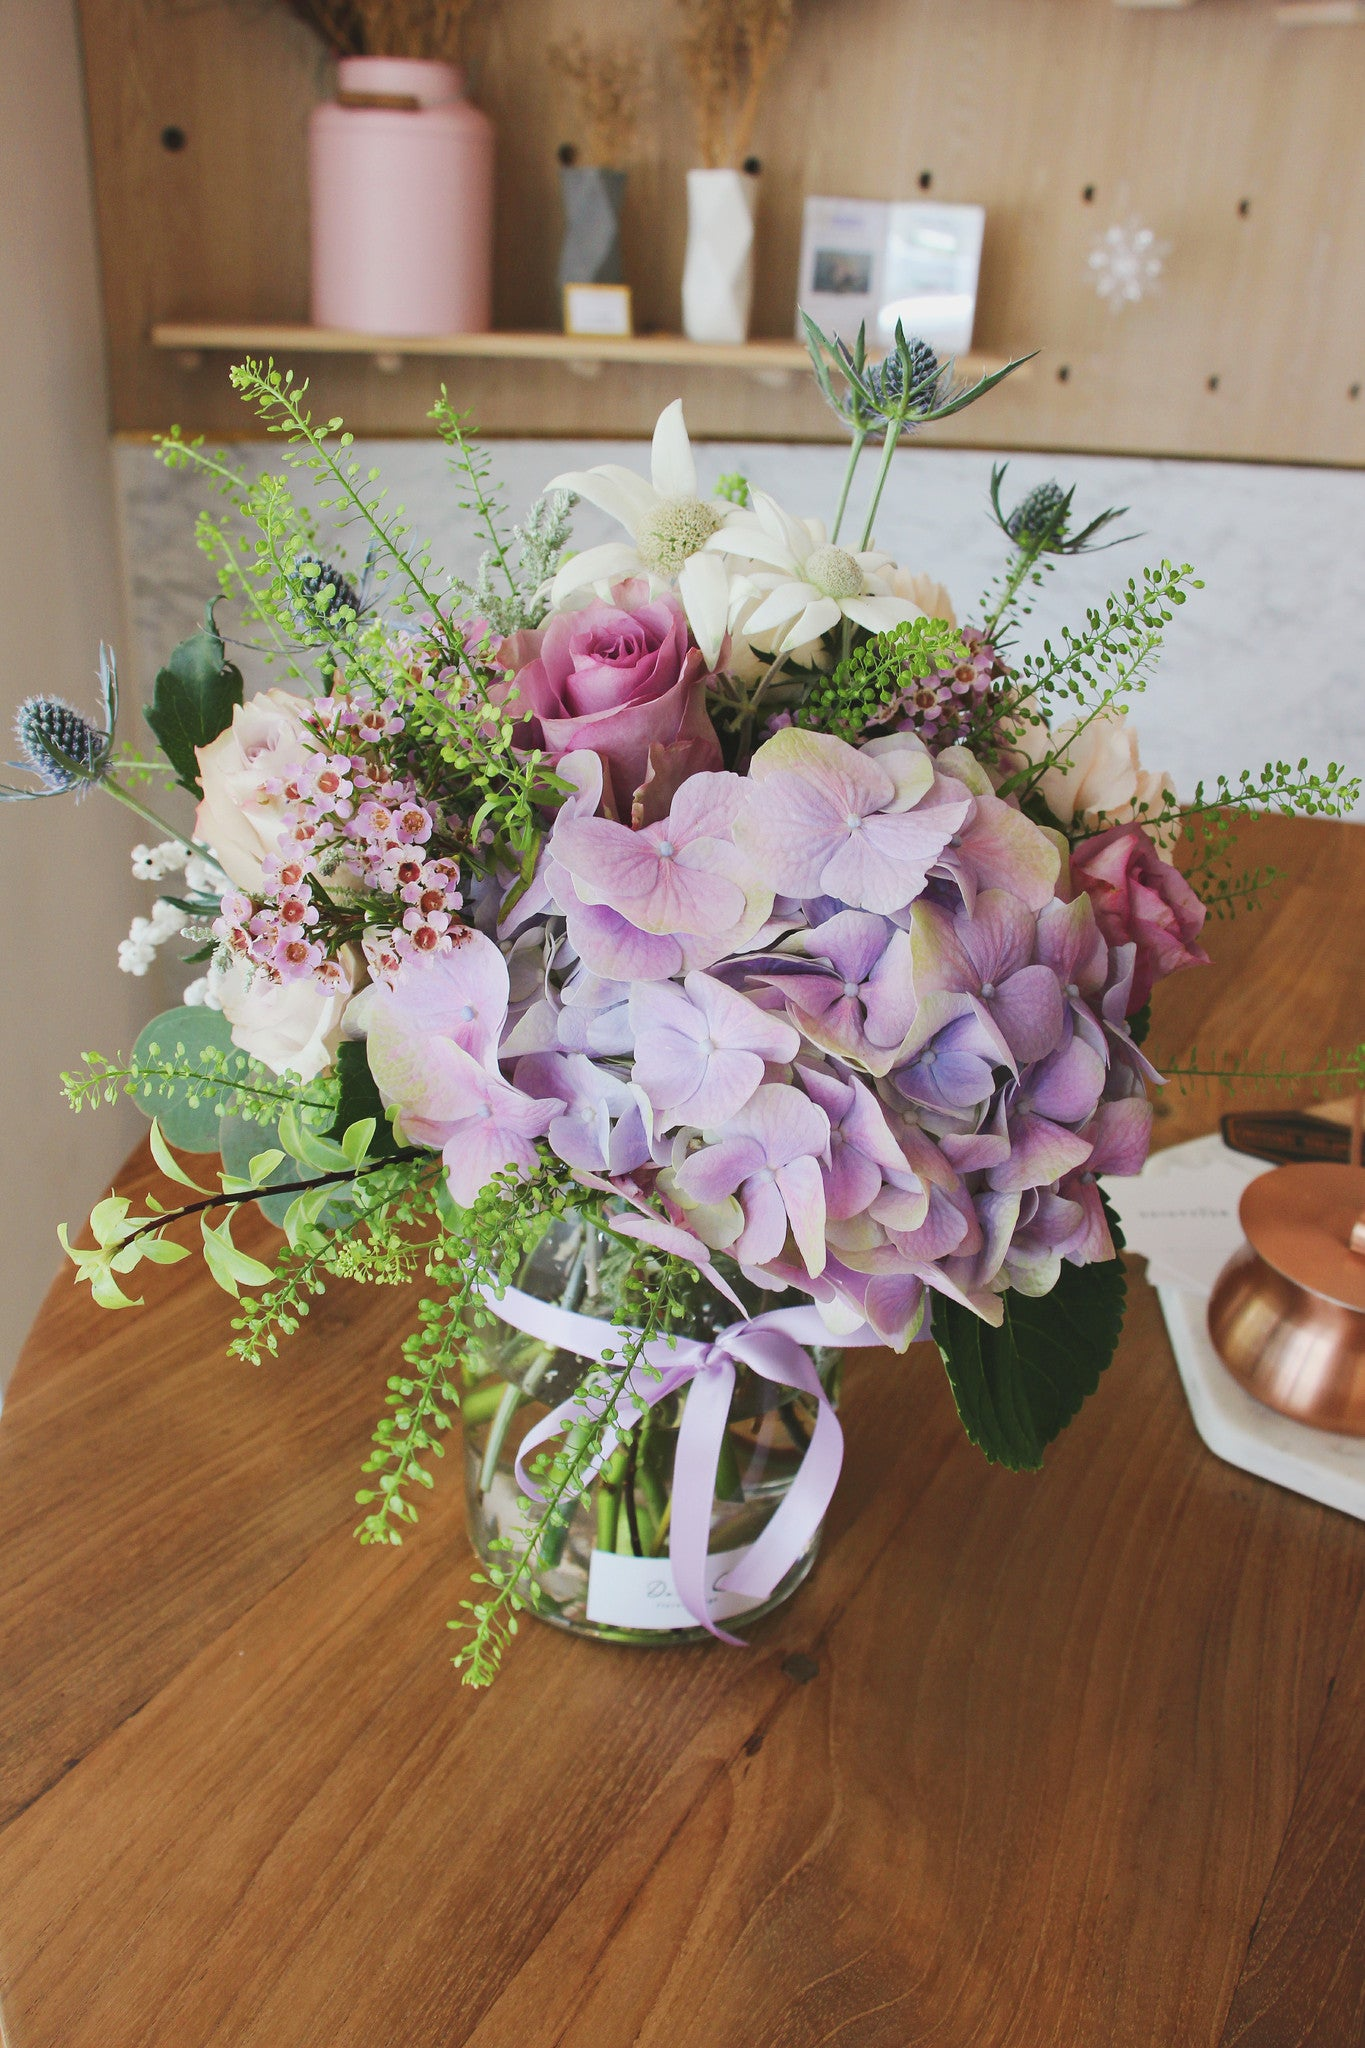 Monthly Flower Subscription For 6 Months 6 Arrangements In Total Dawn Q Floral Design